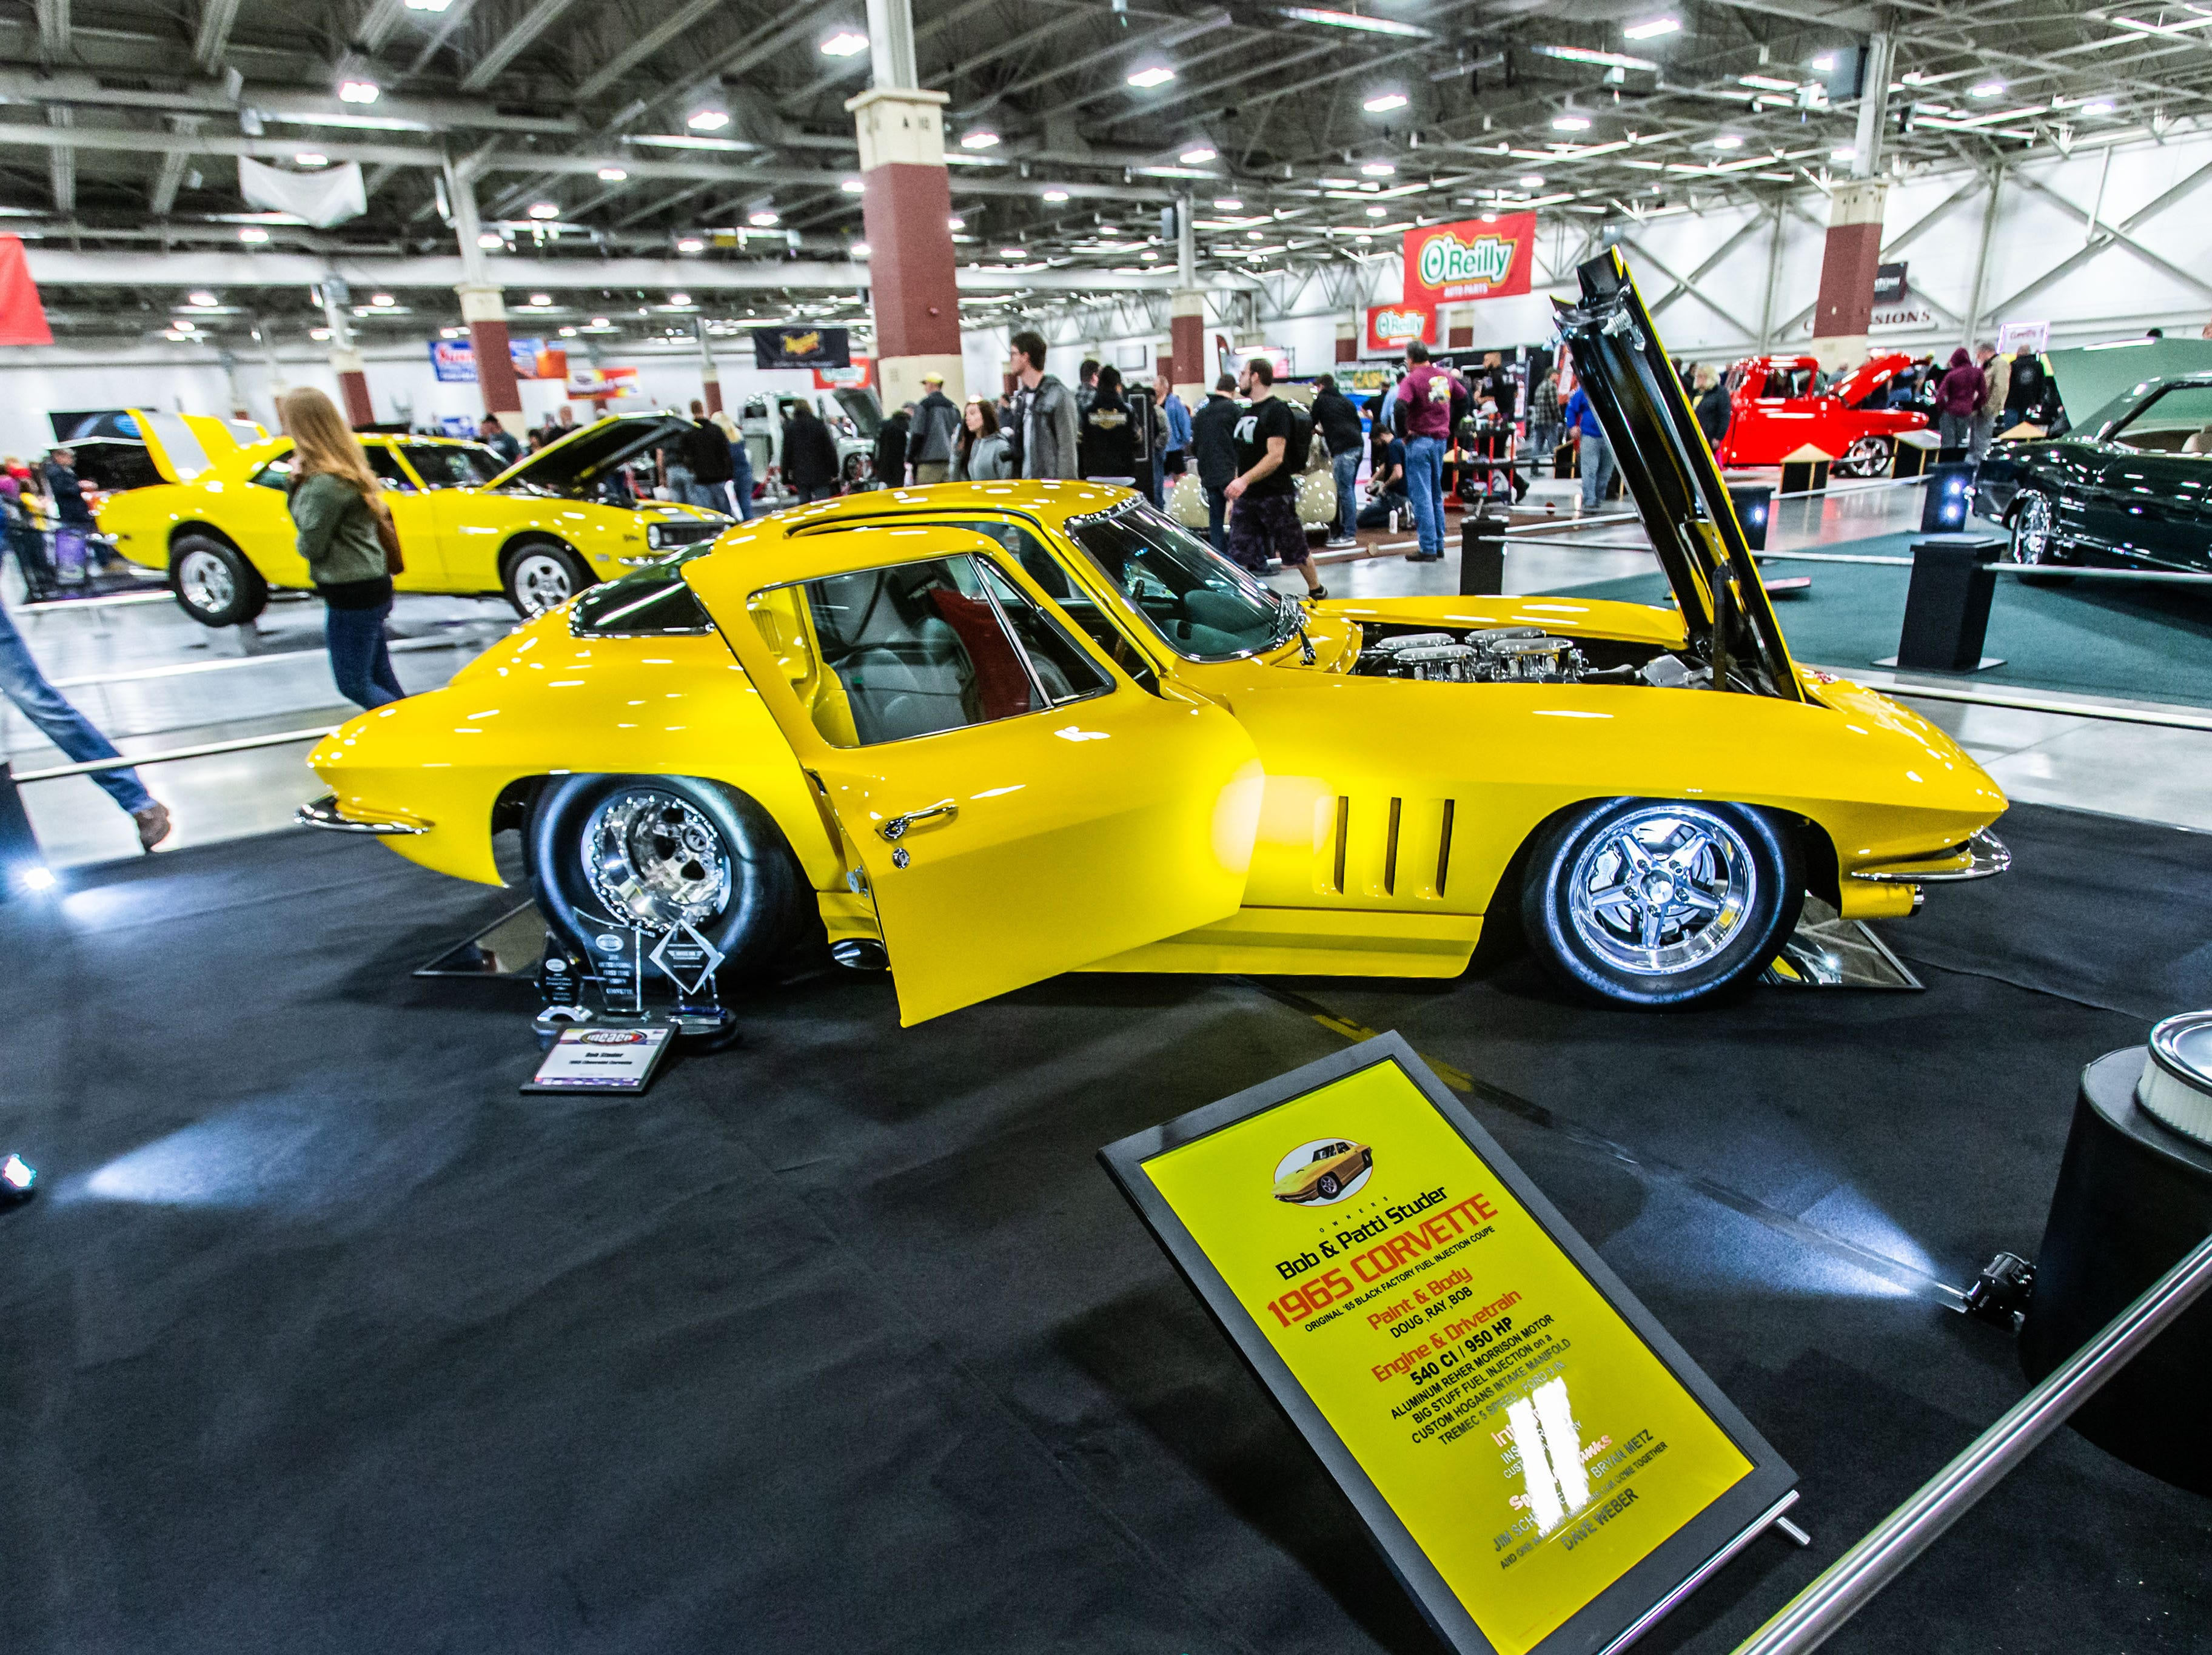 Car show enthusiasts enjoy the world class craftsmanship on display during the 57th annual O'Reilly Auto Parts World of Wheels at State Fair Park in West Allis on Saturday, Feb. 23, 2019. The event features over 300 vehicles, celebrity appearances, vendors, a charity auction and more.